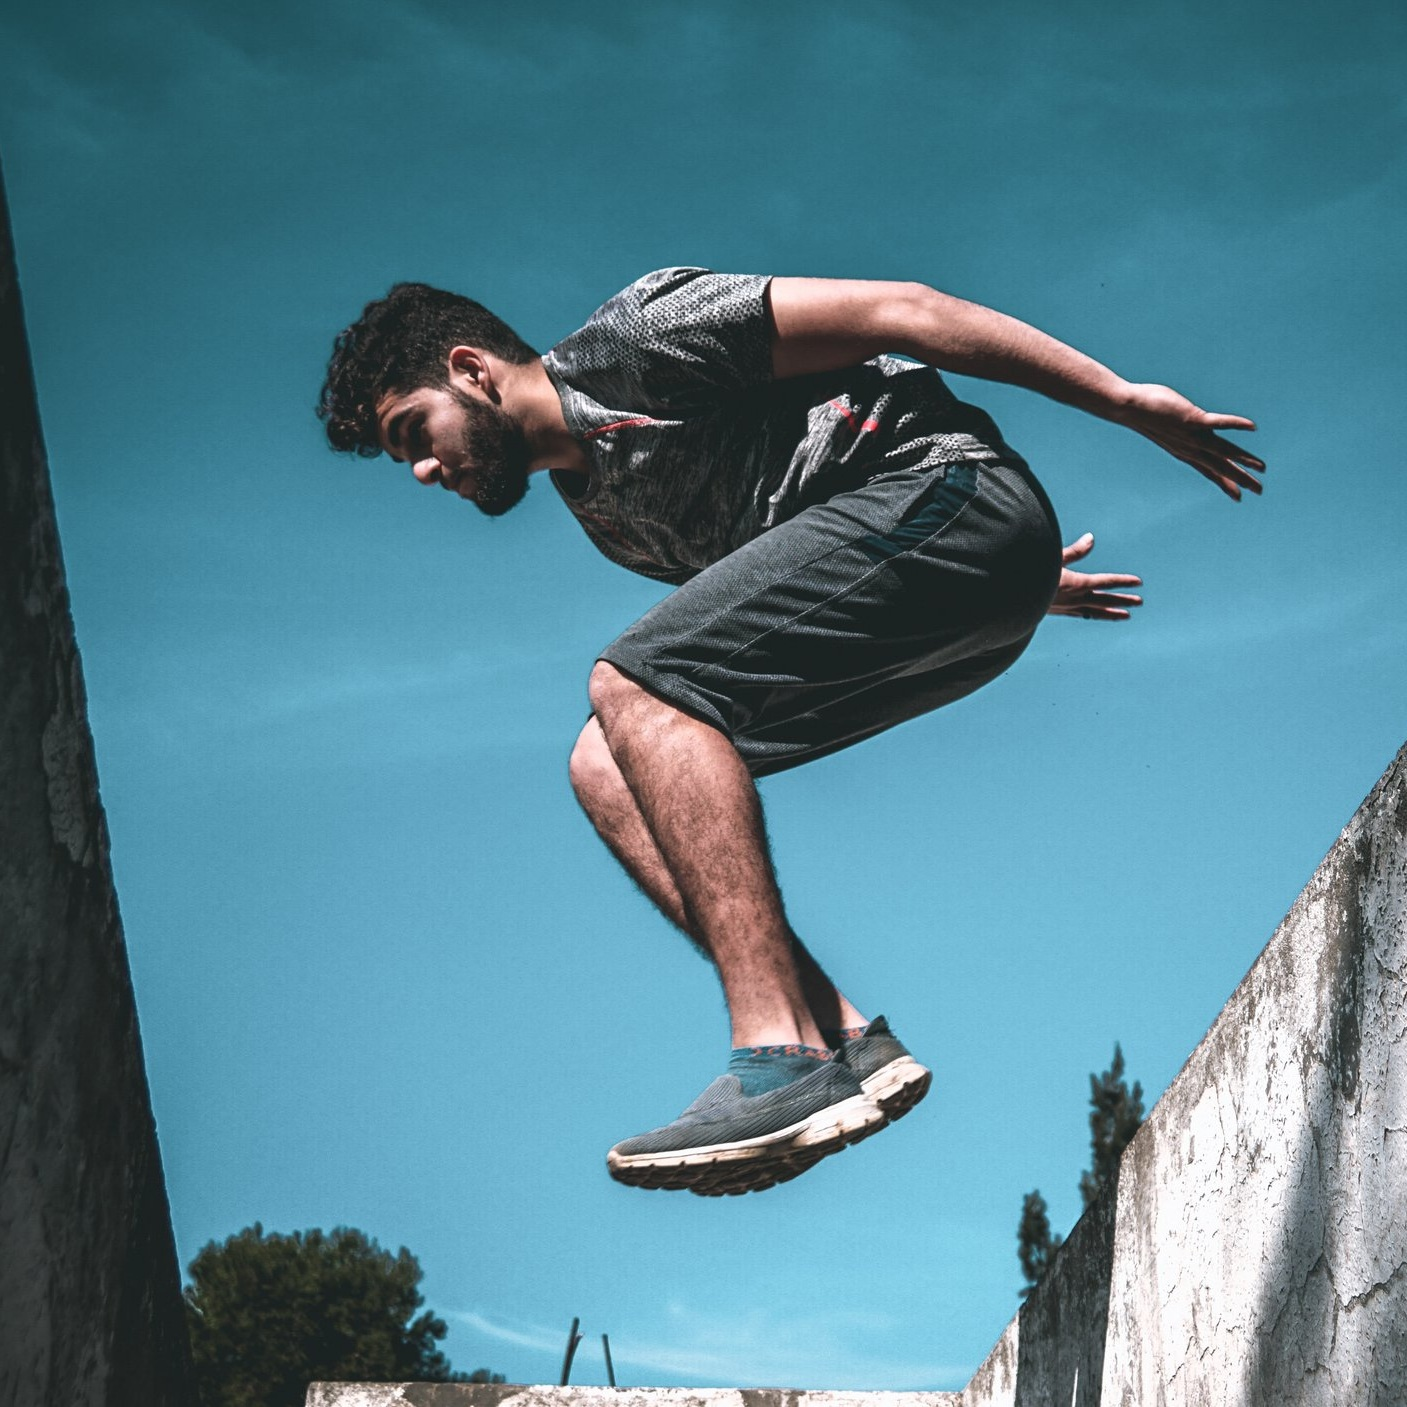 PARKOUR - Give Parkour a go as a way to get into activities such as pentathlon and biathlon. Read more about Parkour UK by clicking the button below.